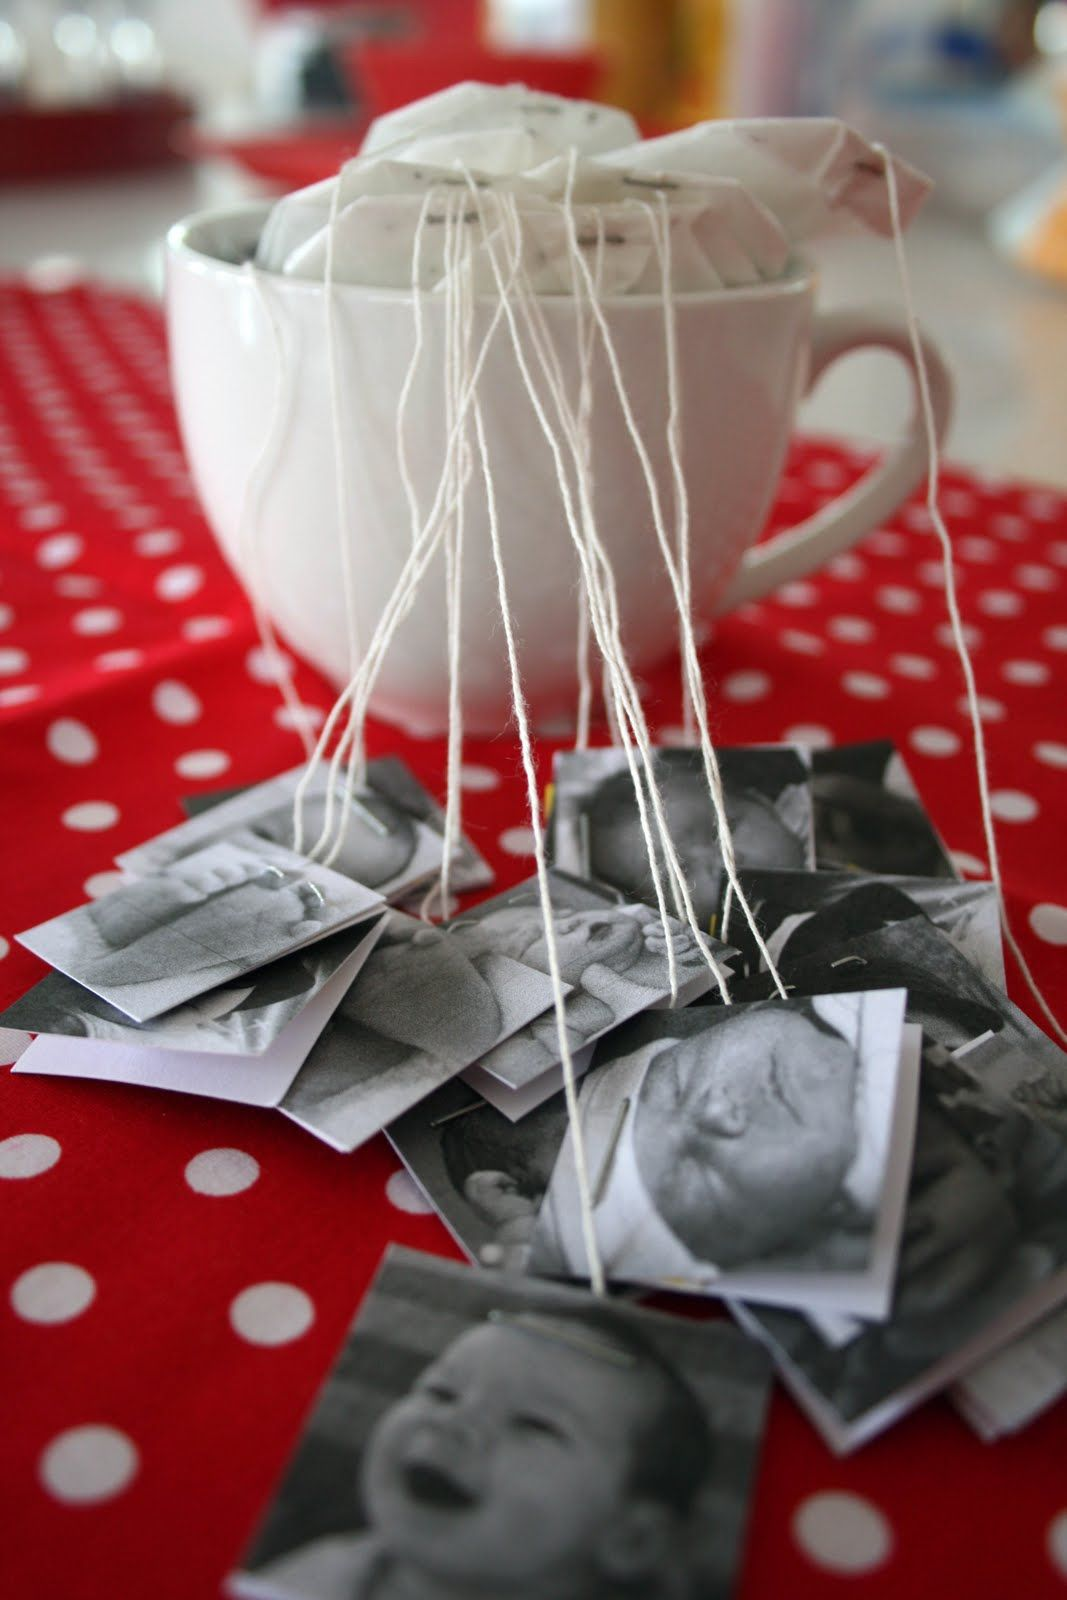 Cute idea for baby shower tea could sue pictures of the happy